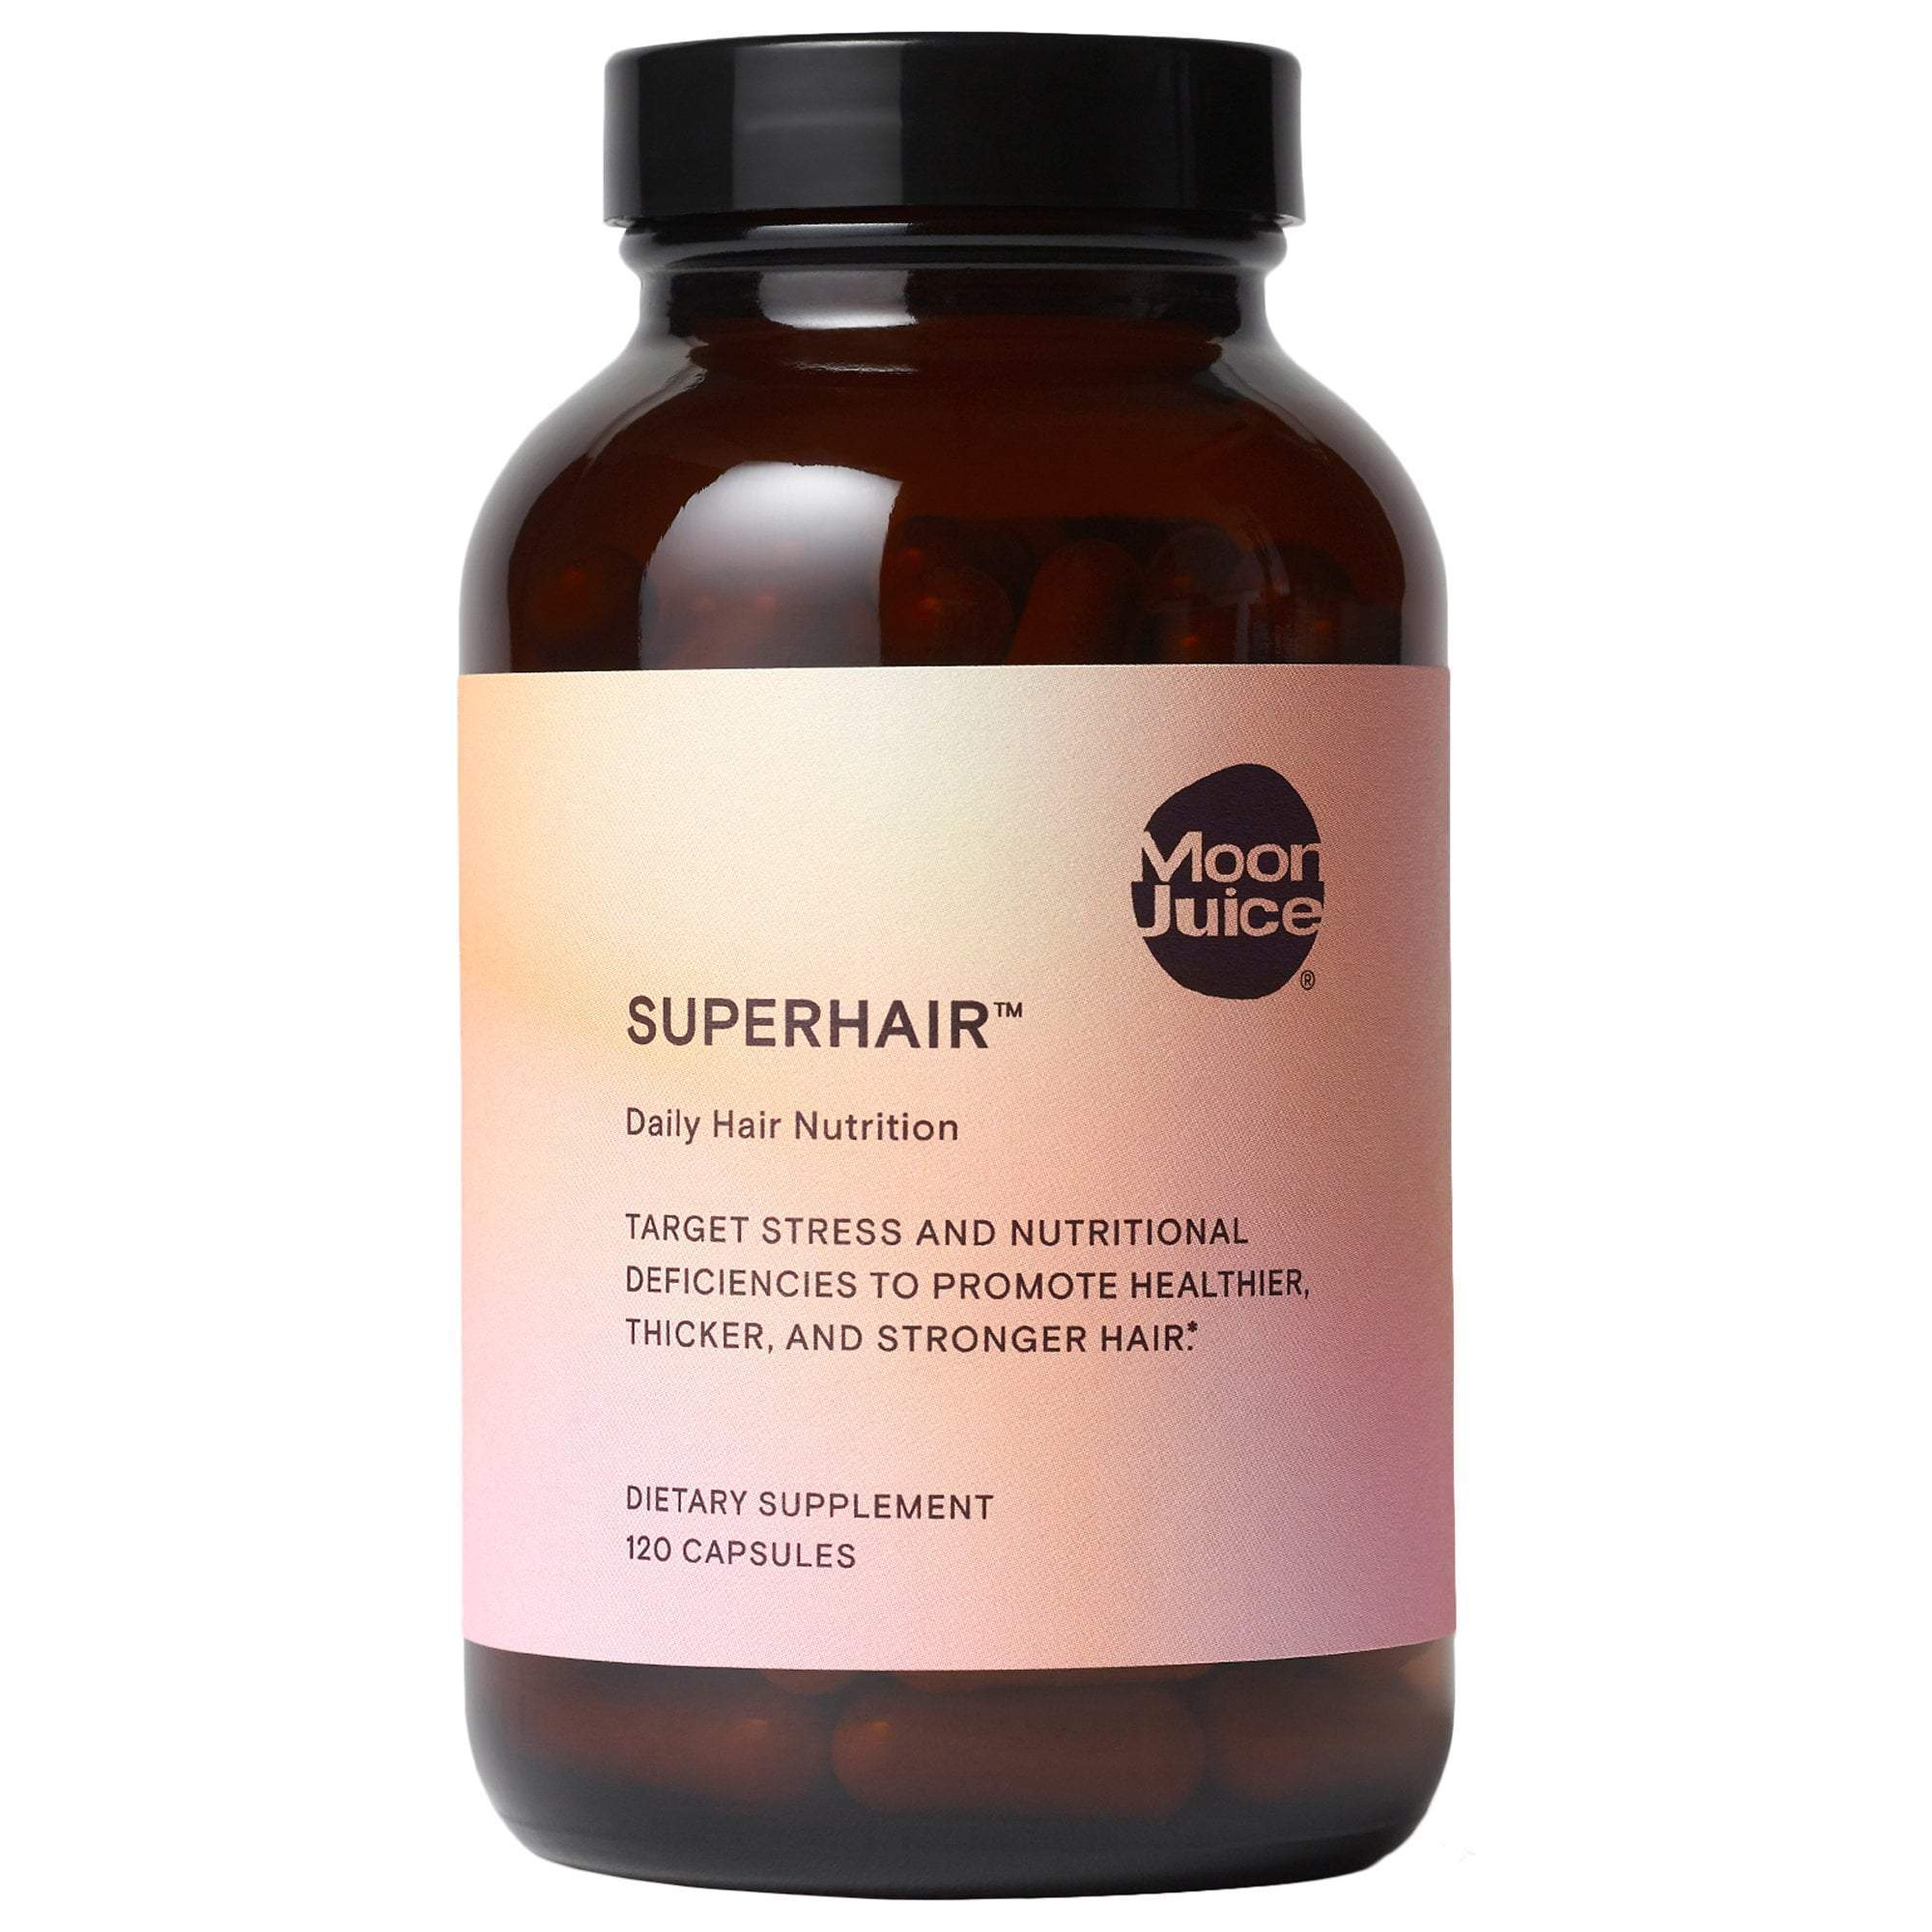 MOON JUICE SuperHair™ Daily Hair Nutrition, 120 Capsules, Hair Care, London Loves Beauty